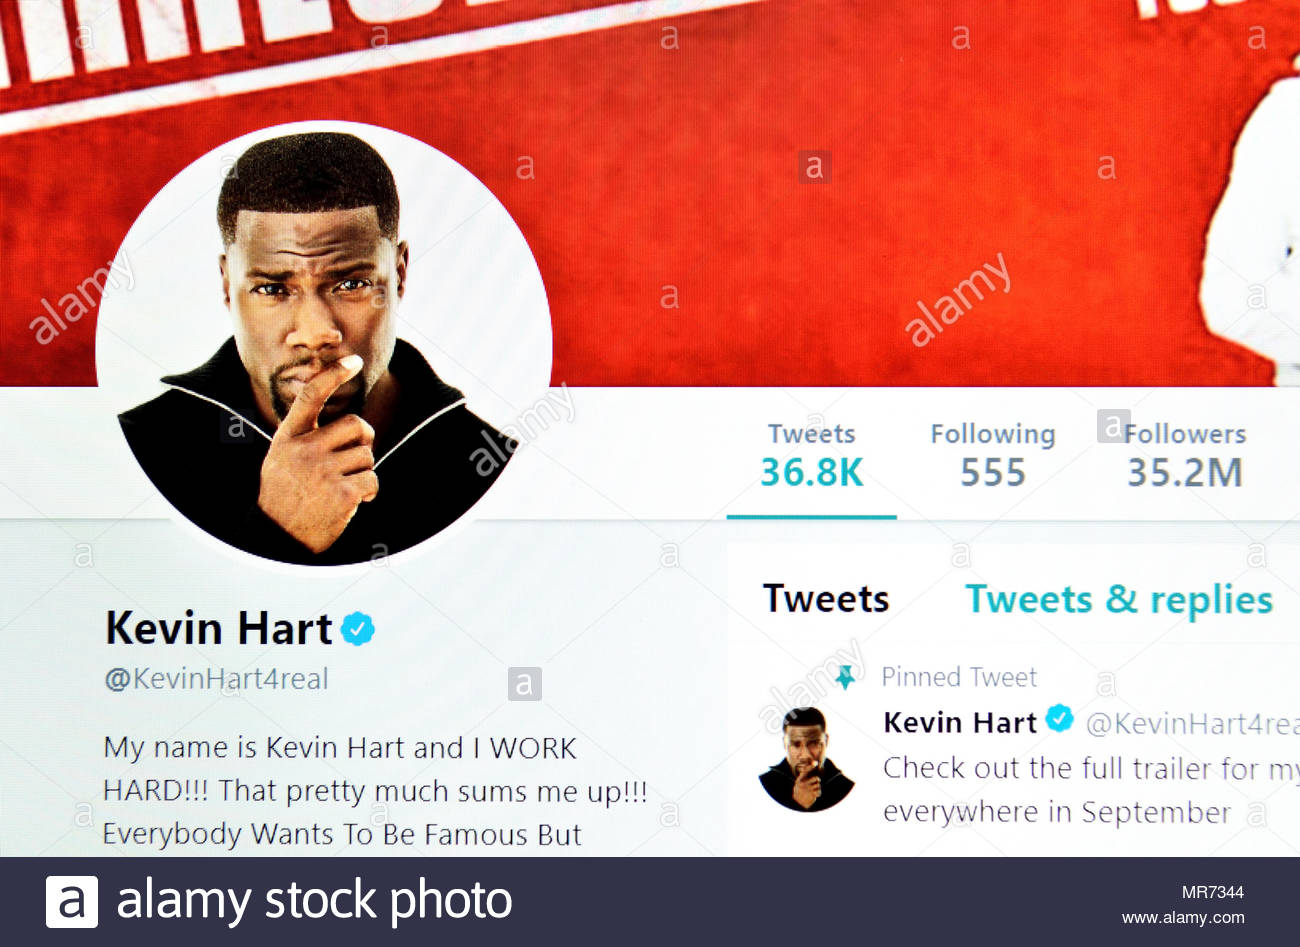 Kevin Hart (American comedian and actor) Twitter page (2018) - Stock Image